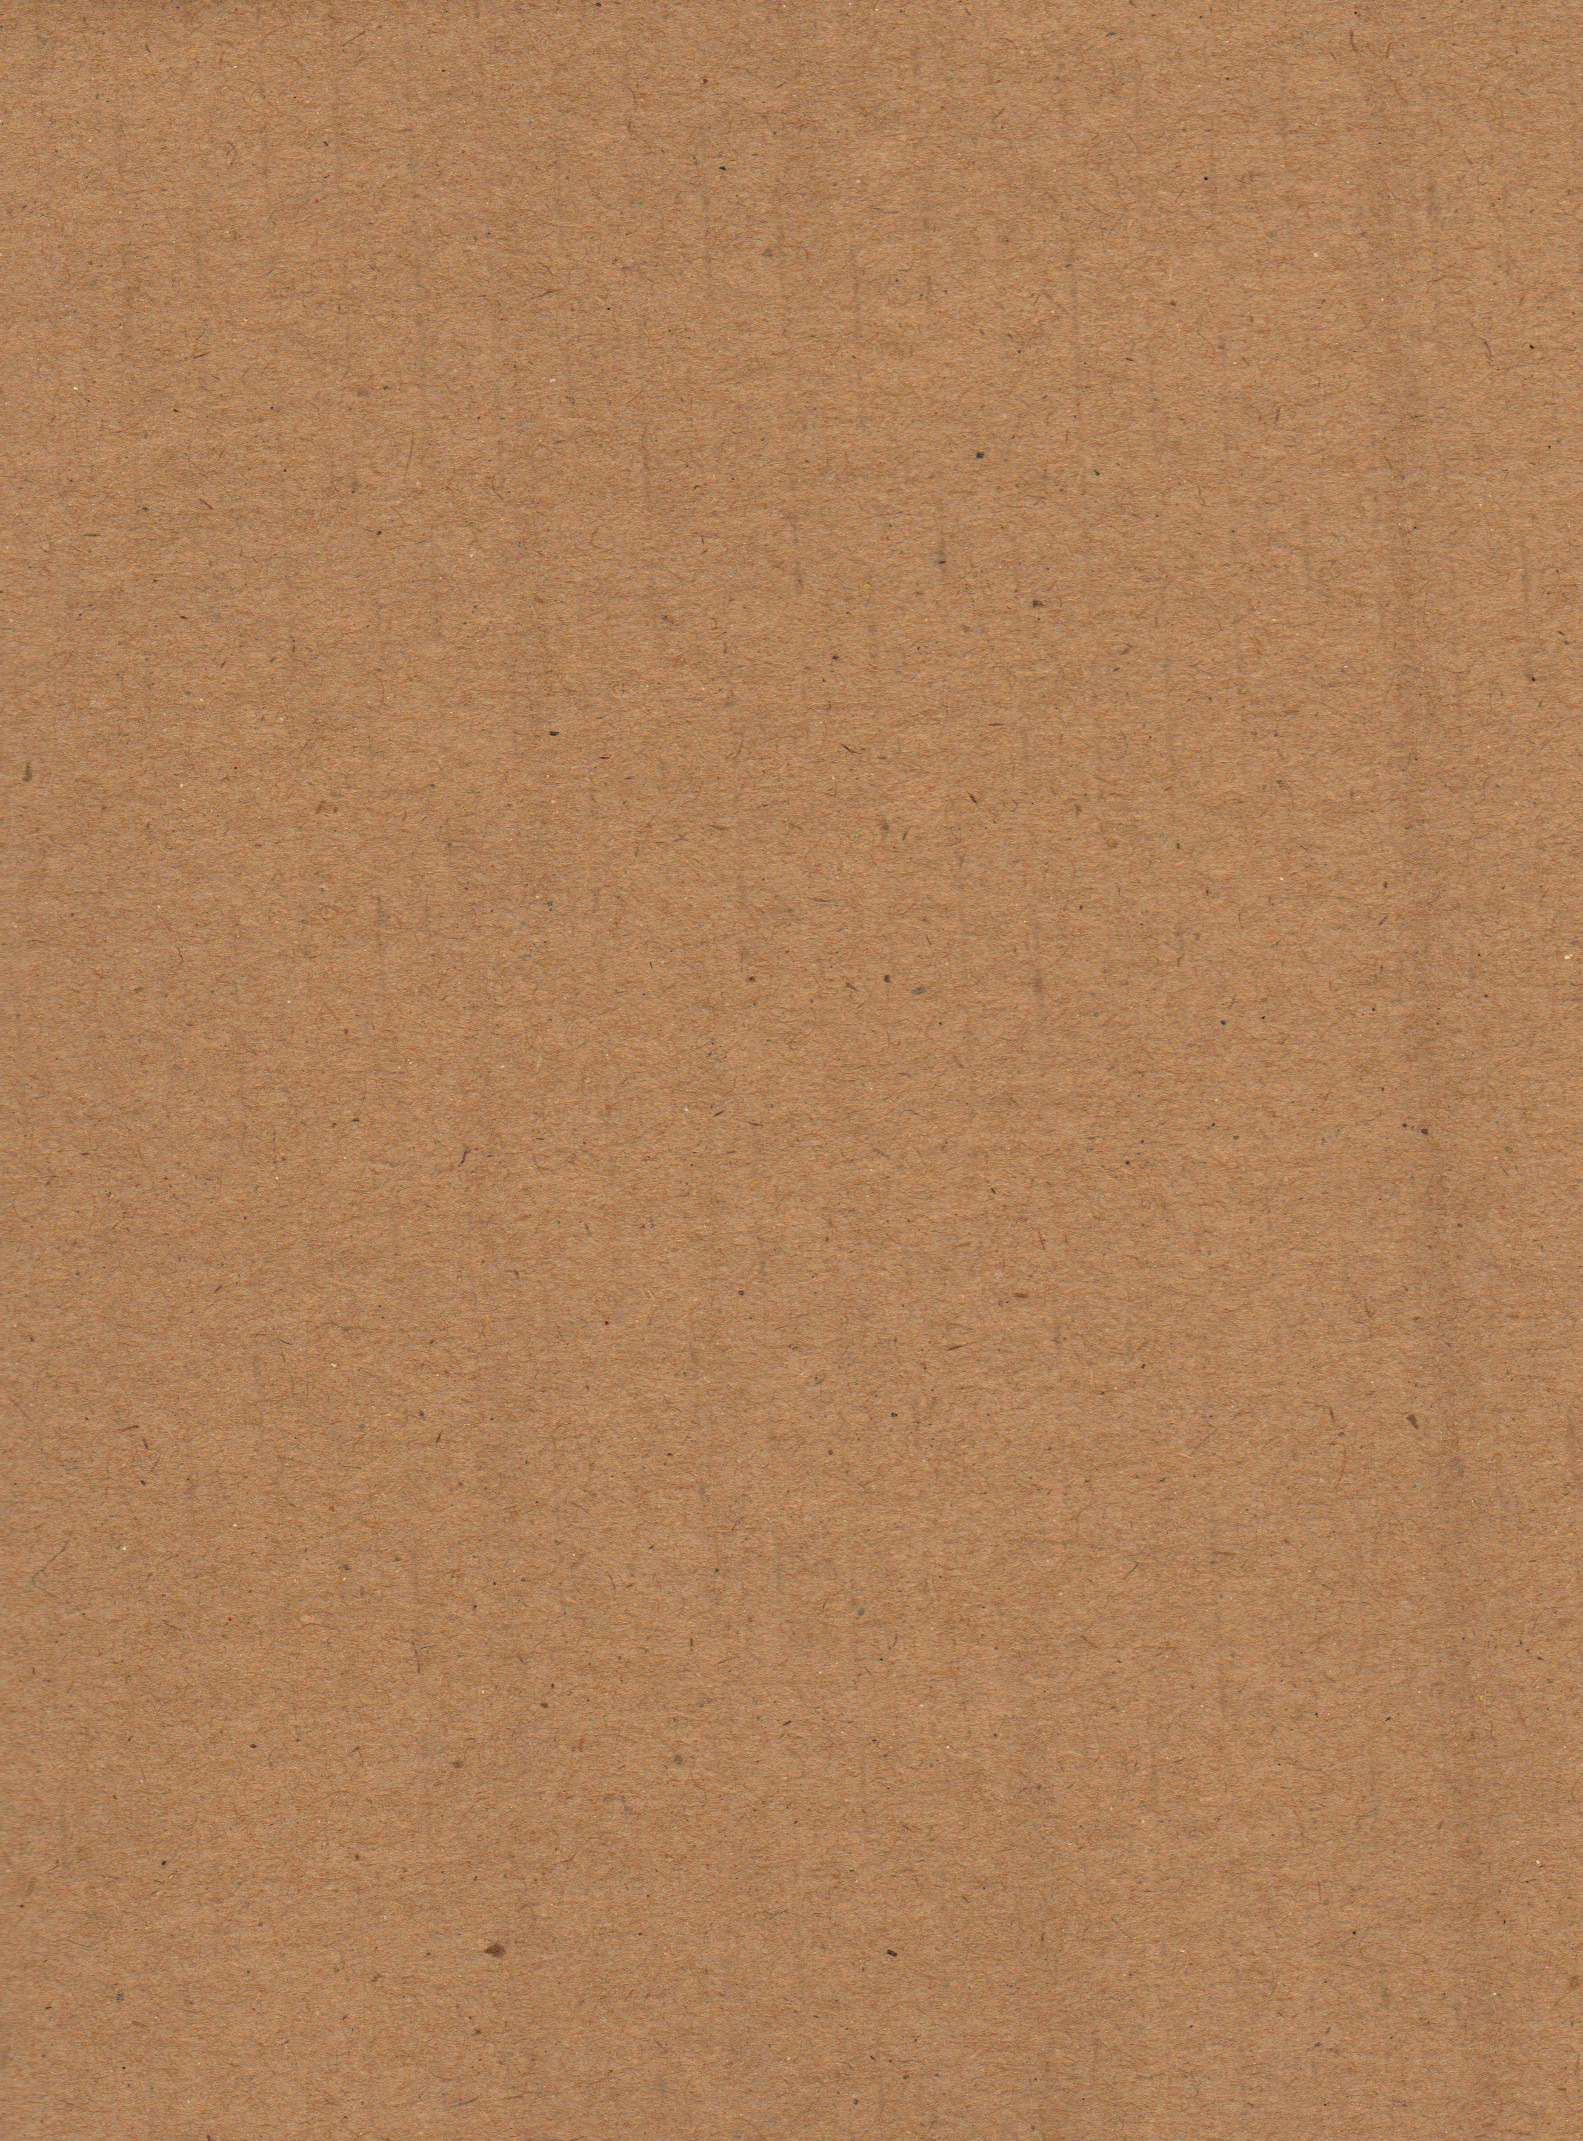 free brown paper and cardboard texture texture l t